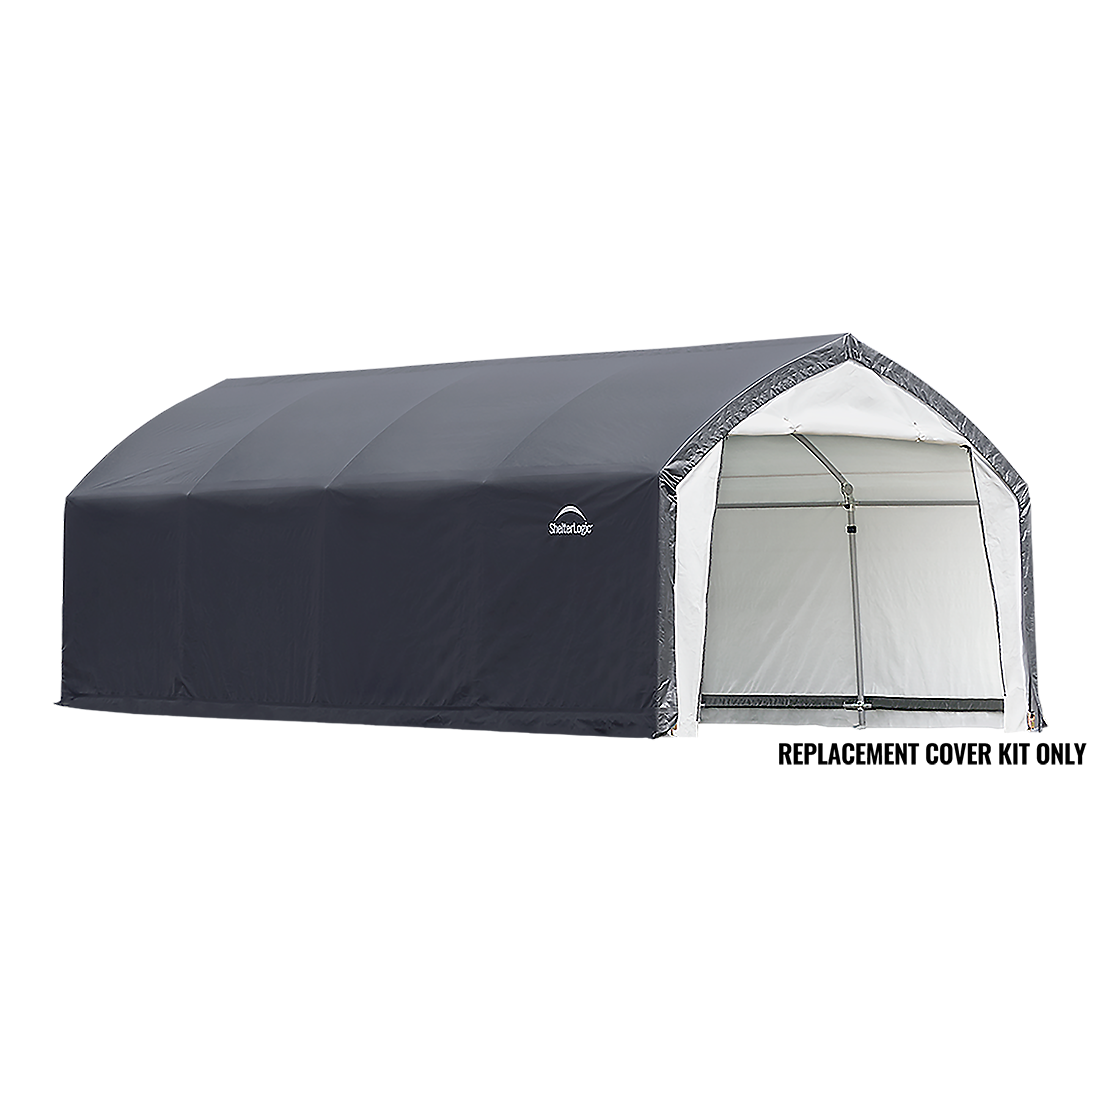 Replacement Cover Kit for the AccelaFrame™ HD Shelter 12 x 20 x 9 ft.